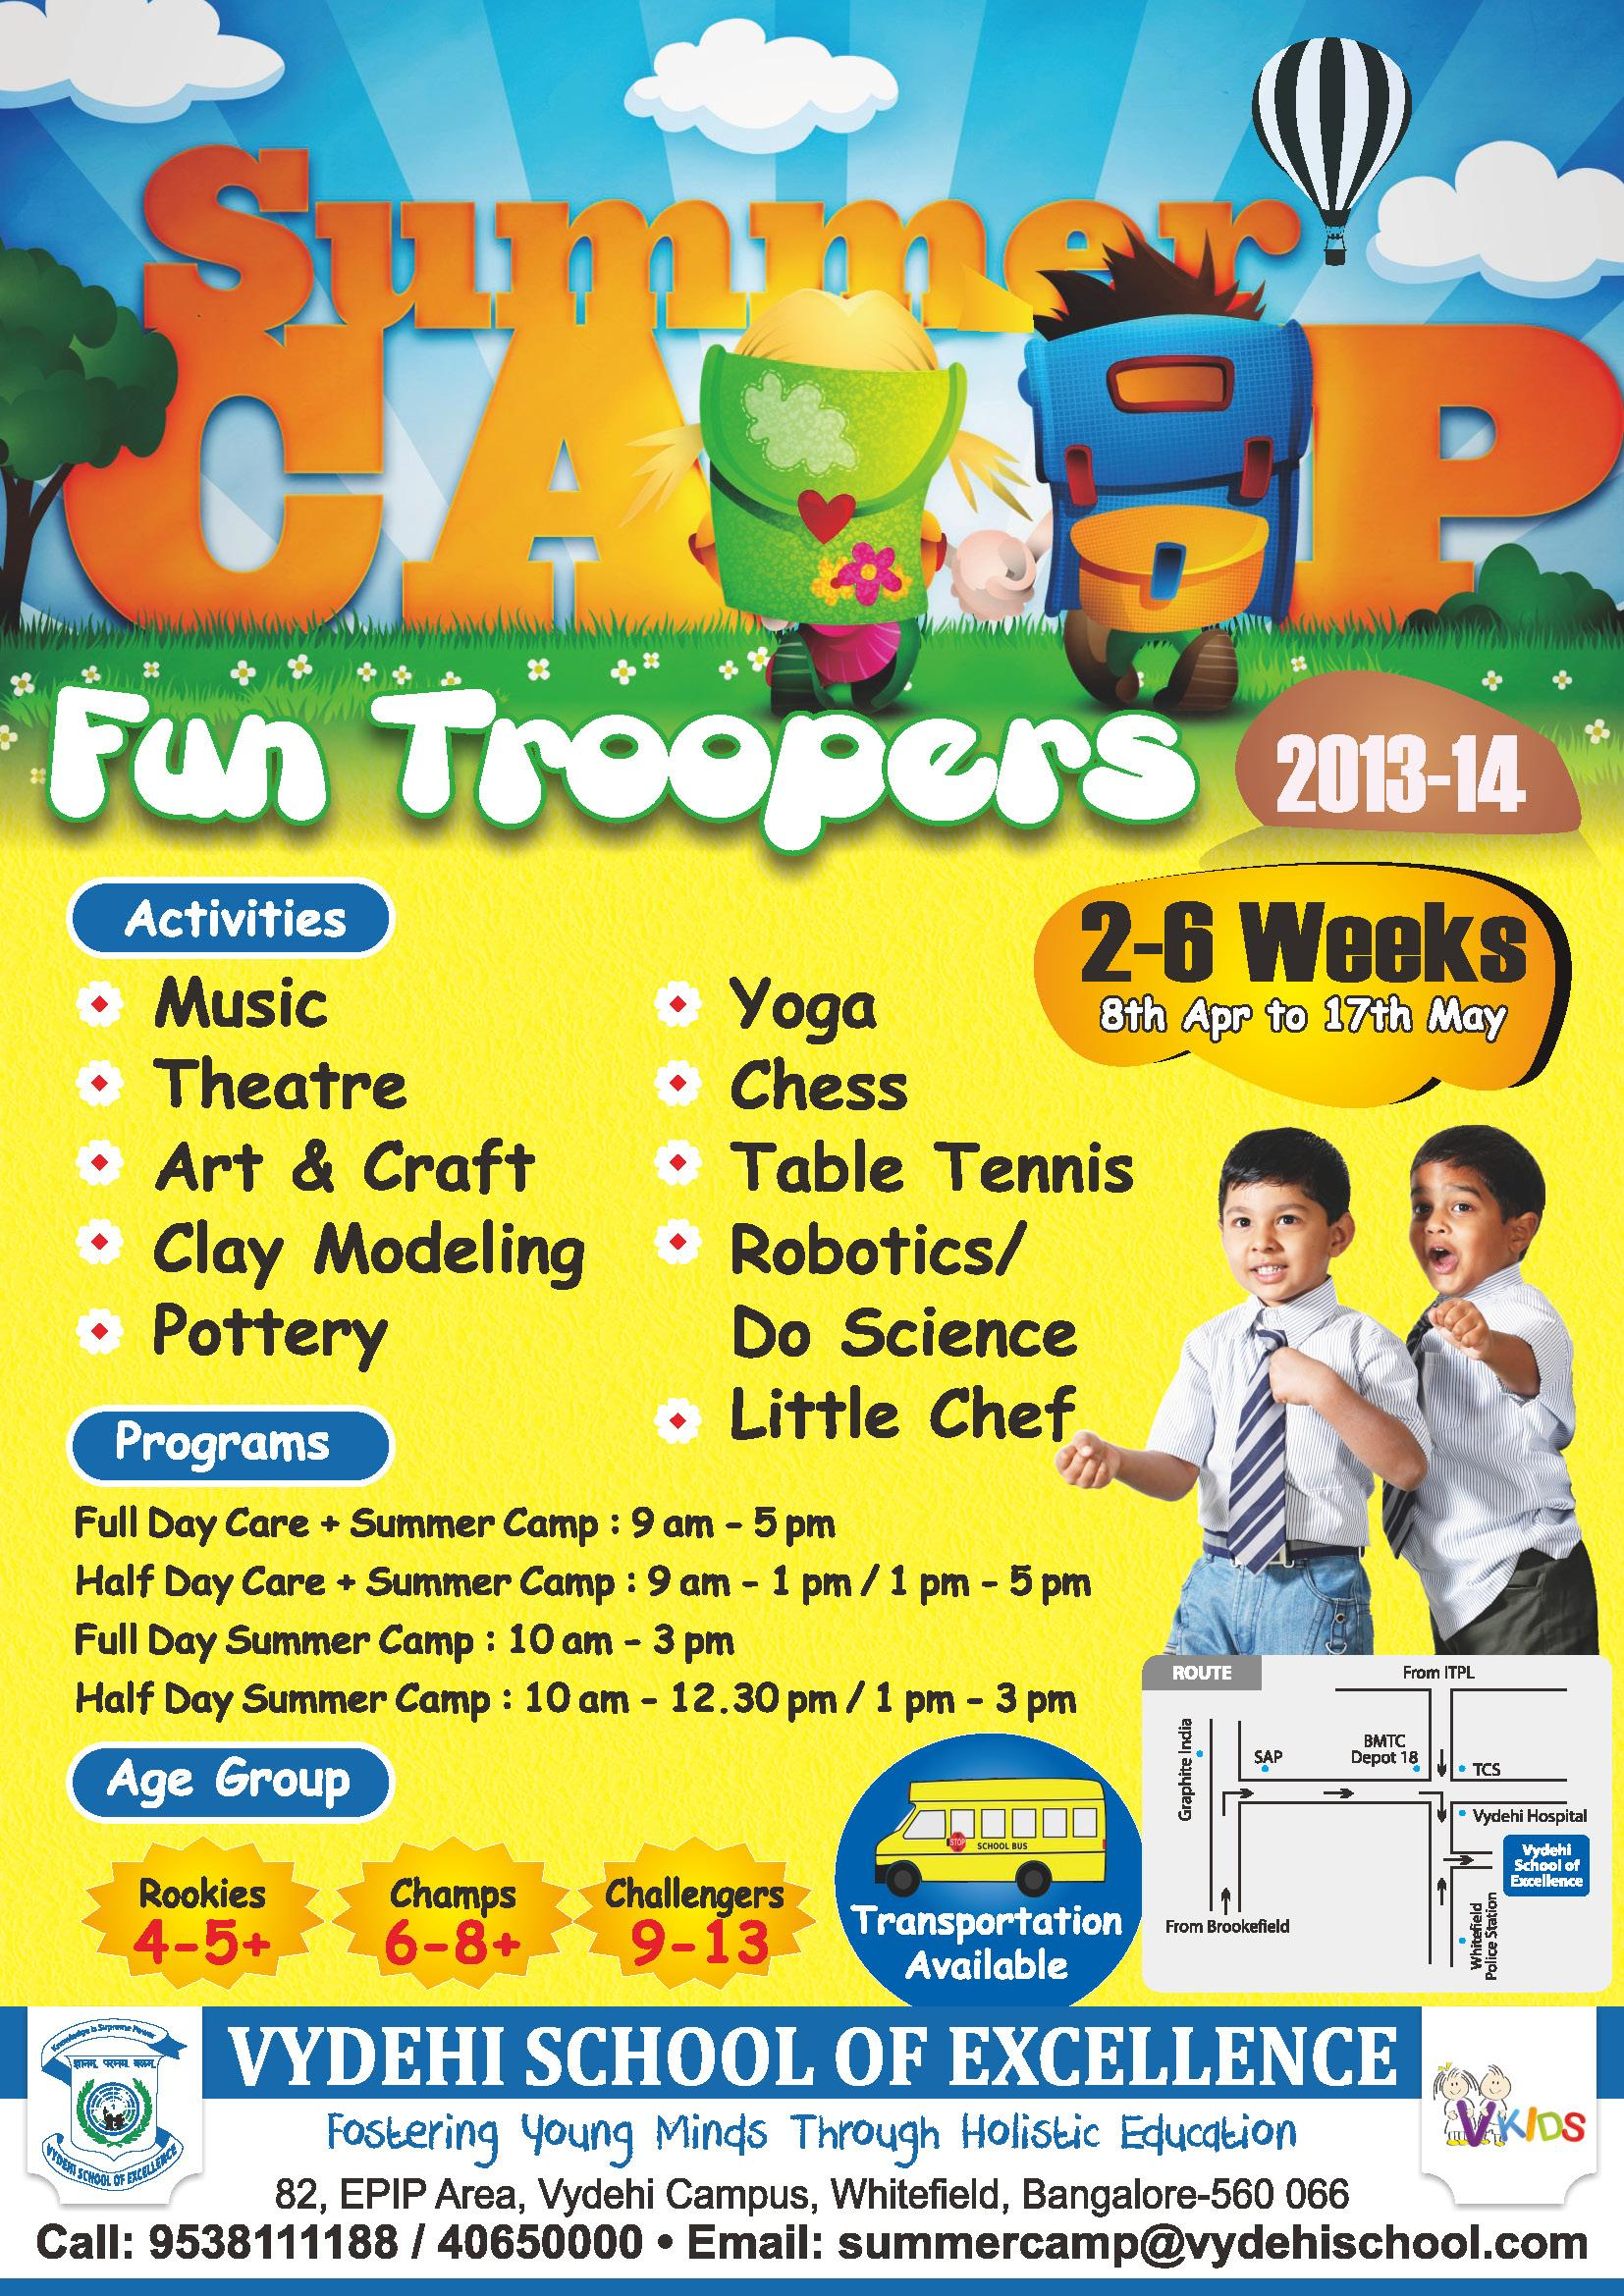 Fun Troopers 2013' - Summer Camp from Vydehi School of ... - photo#24